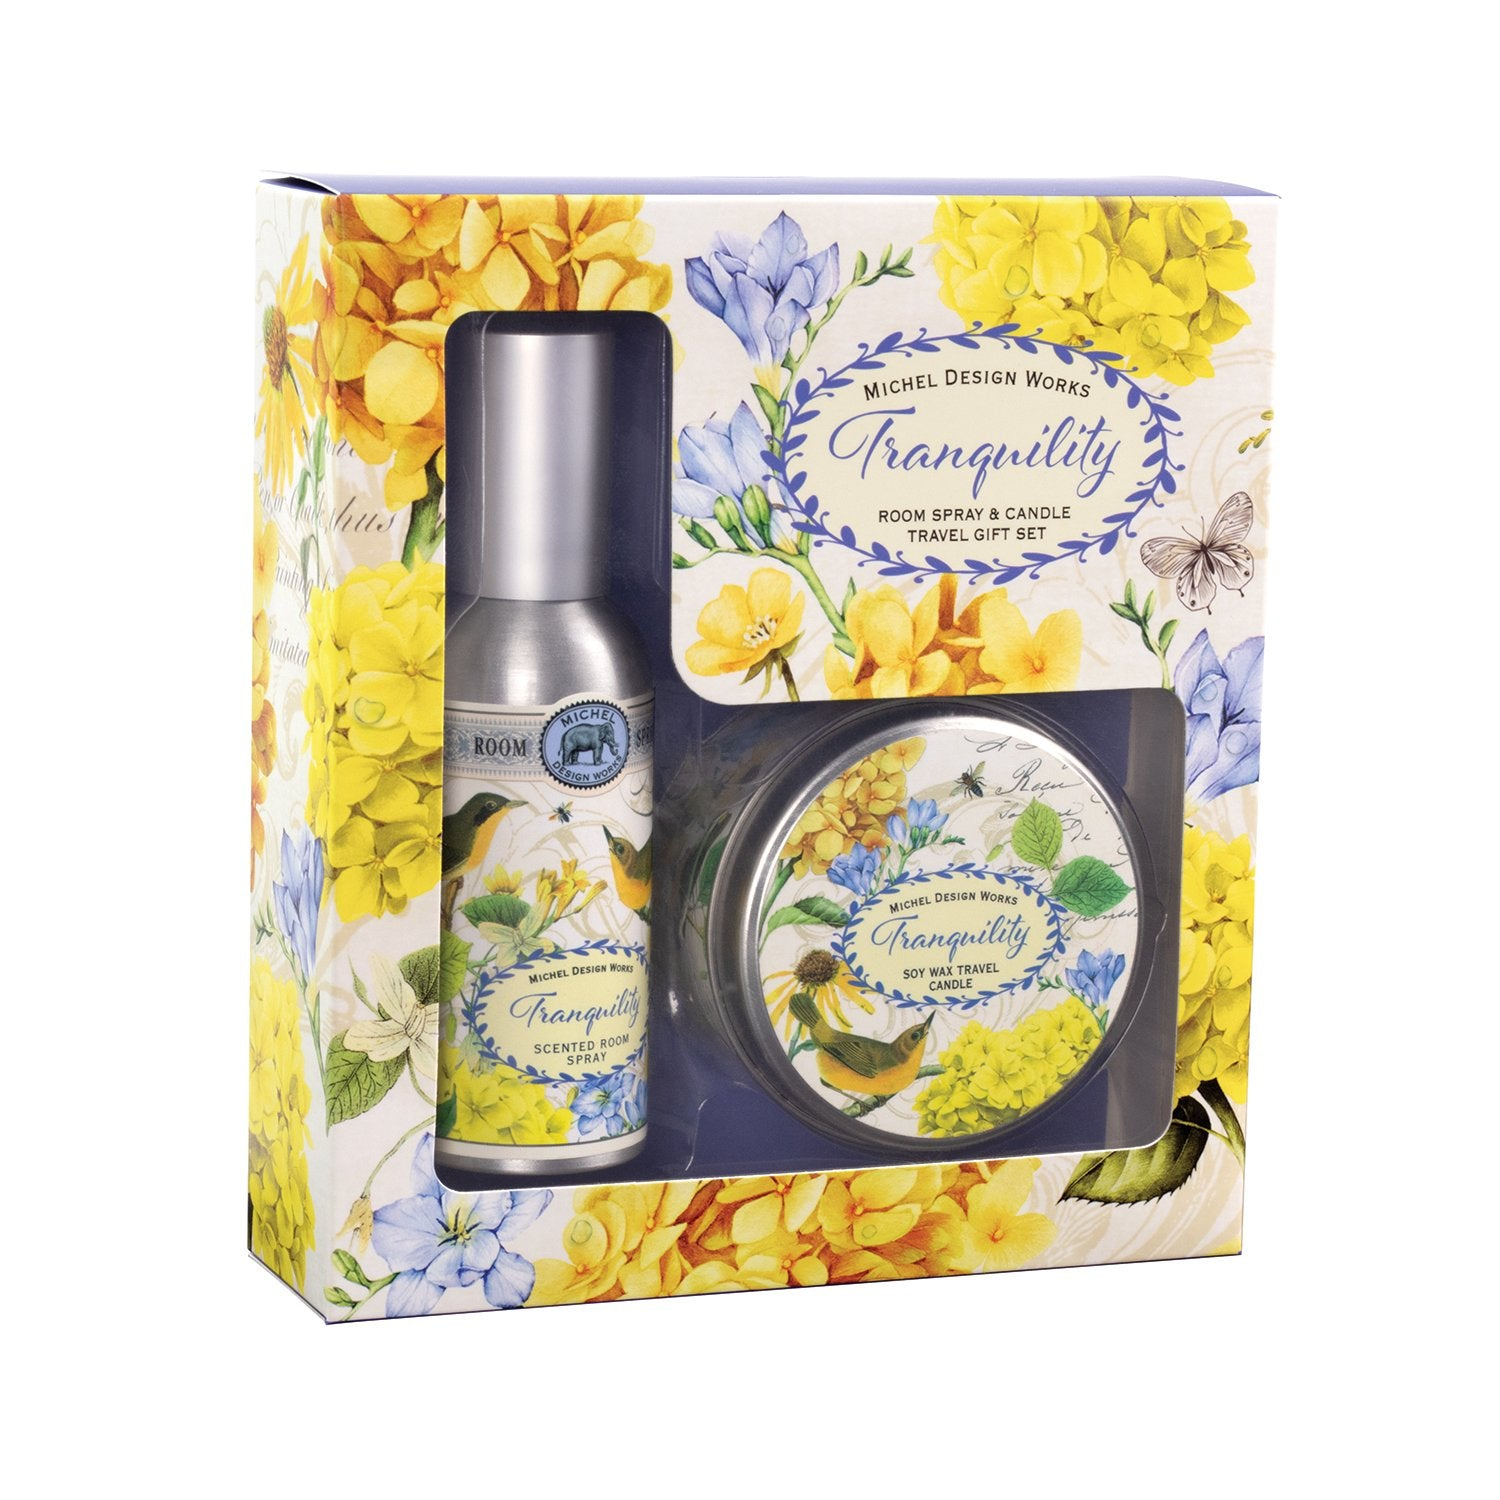 Tranquility Room Spray and Candle Travel Gift Sets